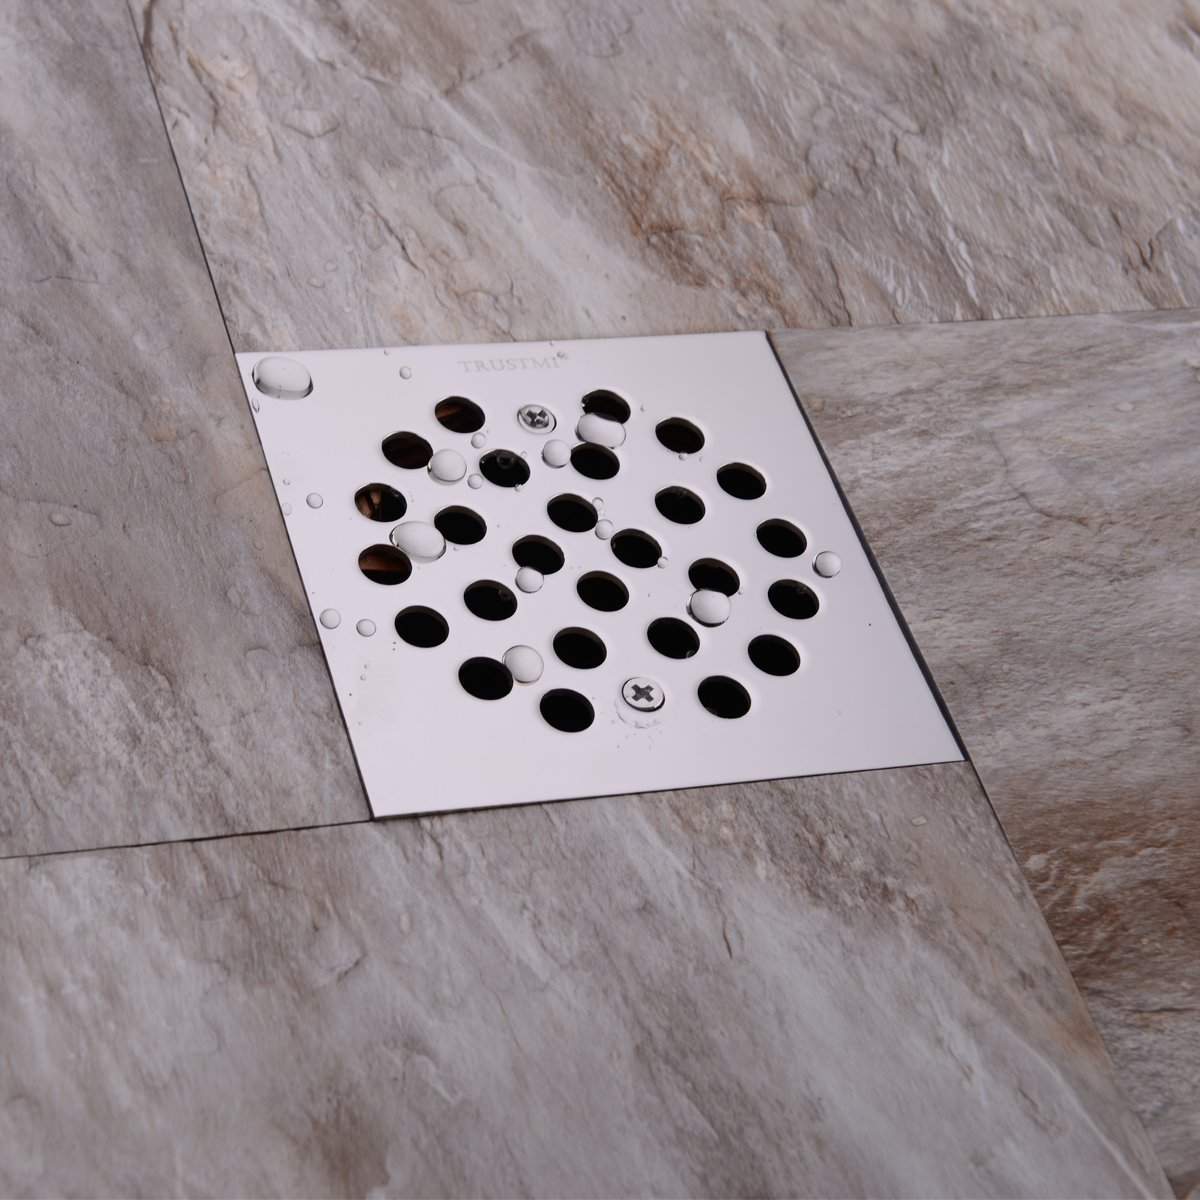 TRUSTMI Square 4-1//4-inch Screw-in Shower Floor Drain Grate Strainer,Brushed Nickel,also Chrome and Oil Rubbed Bronze for Choose